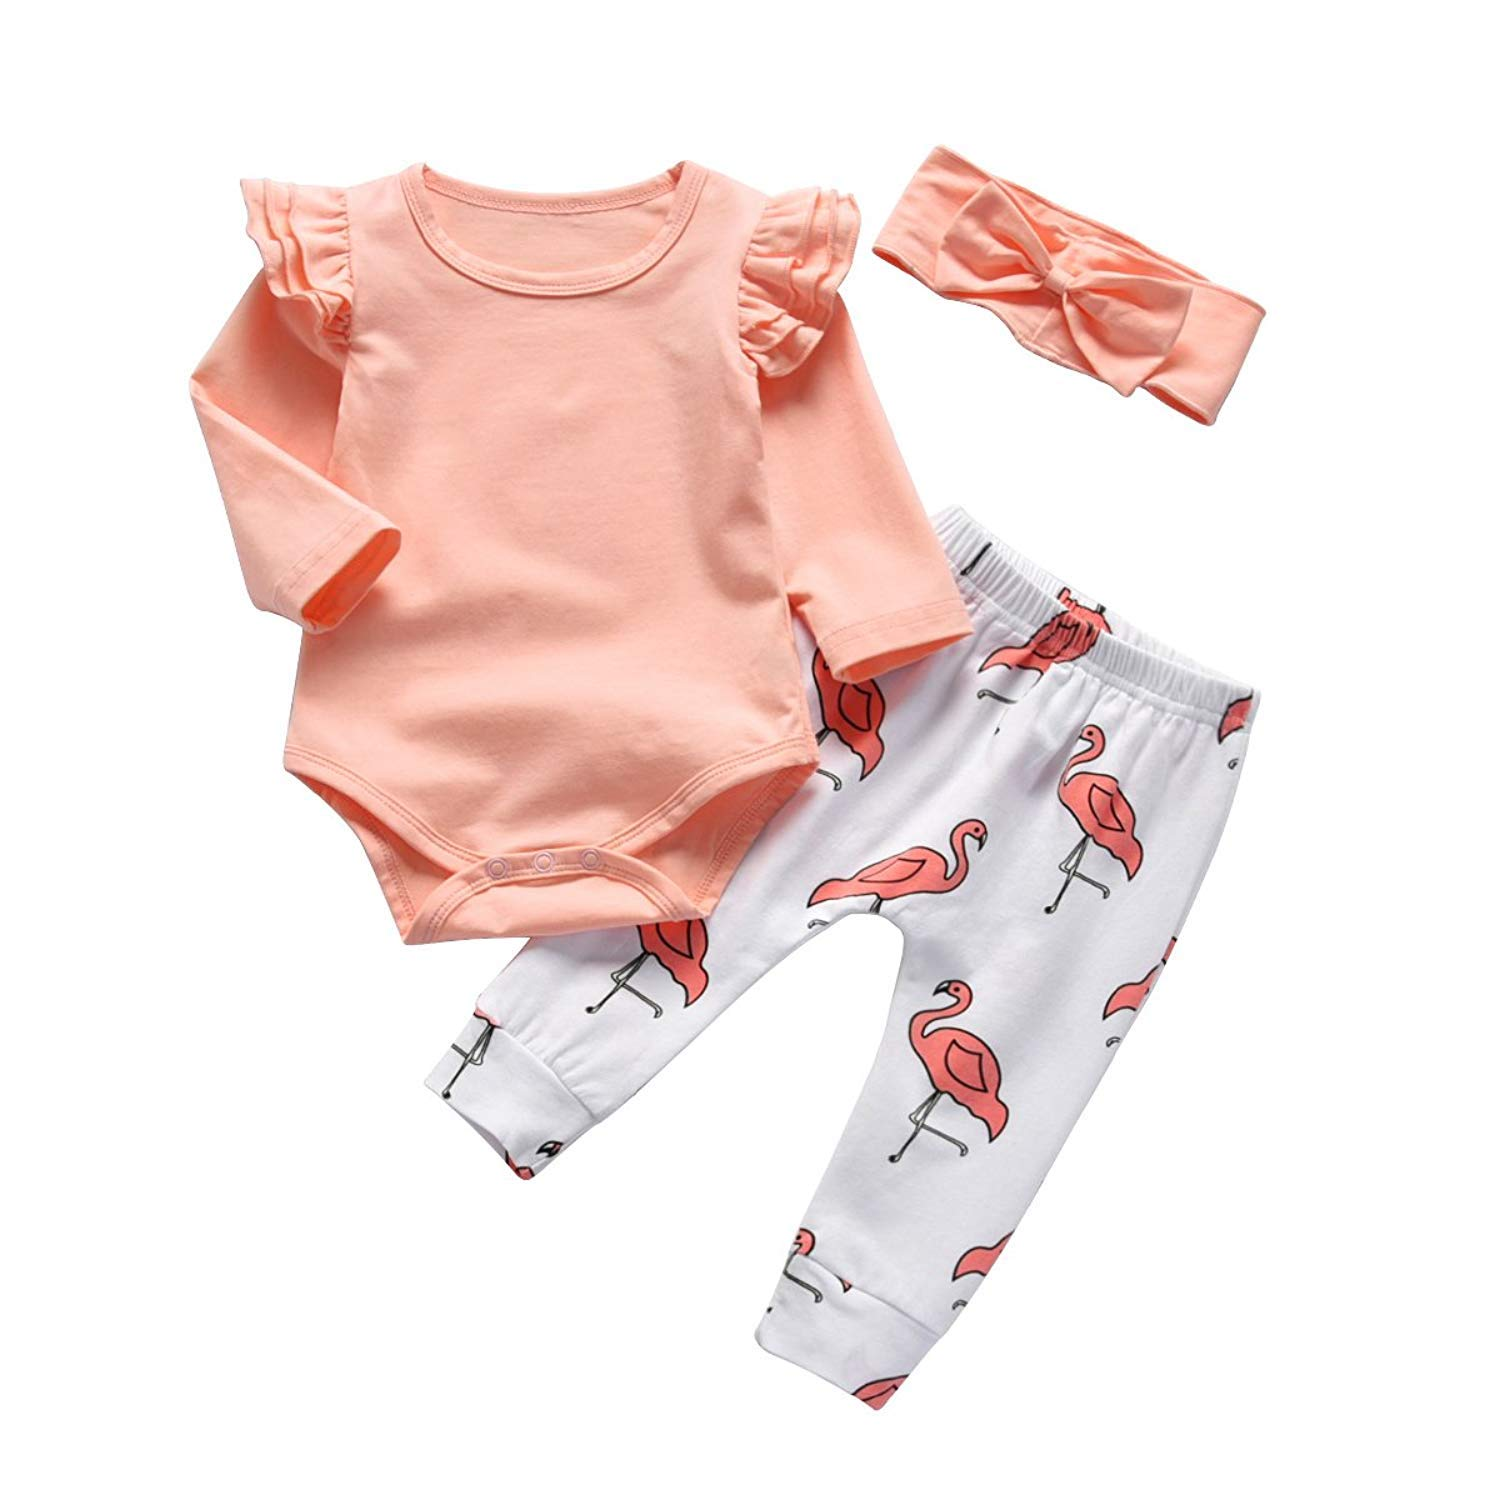 Baby Girl Clothes Pink Ruffle Long Sleeve Tops Flamingo Pants with Headband Bodysuit Outfits Sets(3-6M)